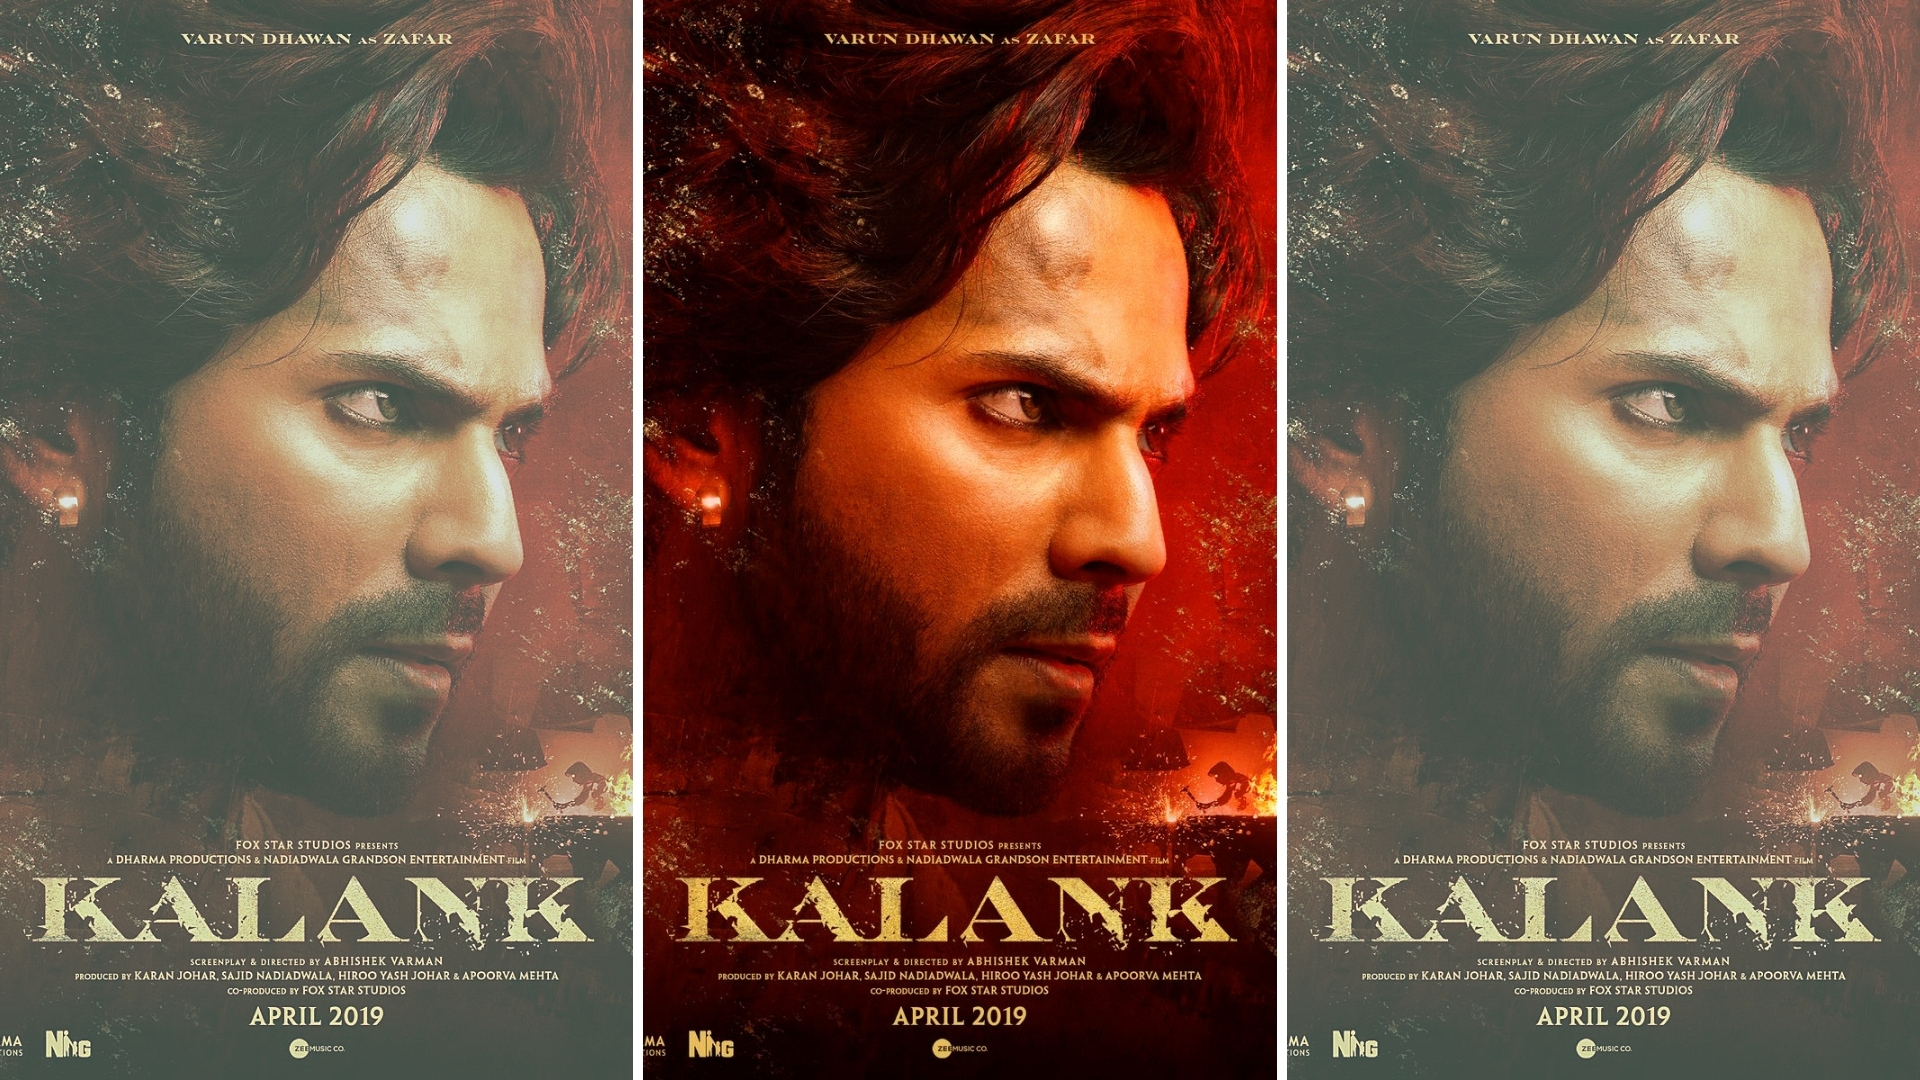 Entertainment News Today: 'Kalank', 'Panga' First Looks